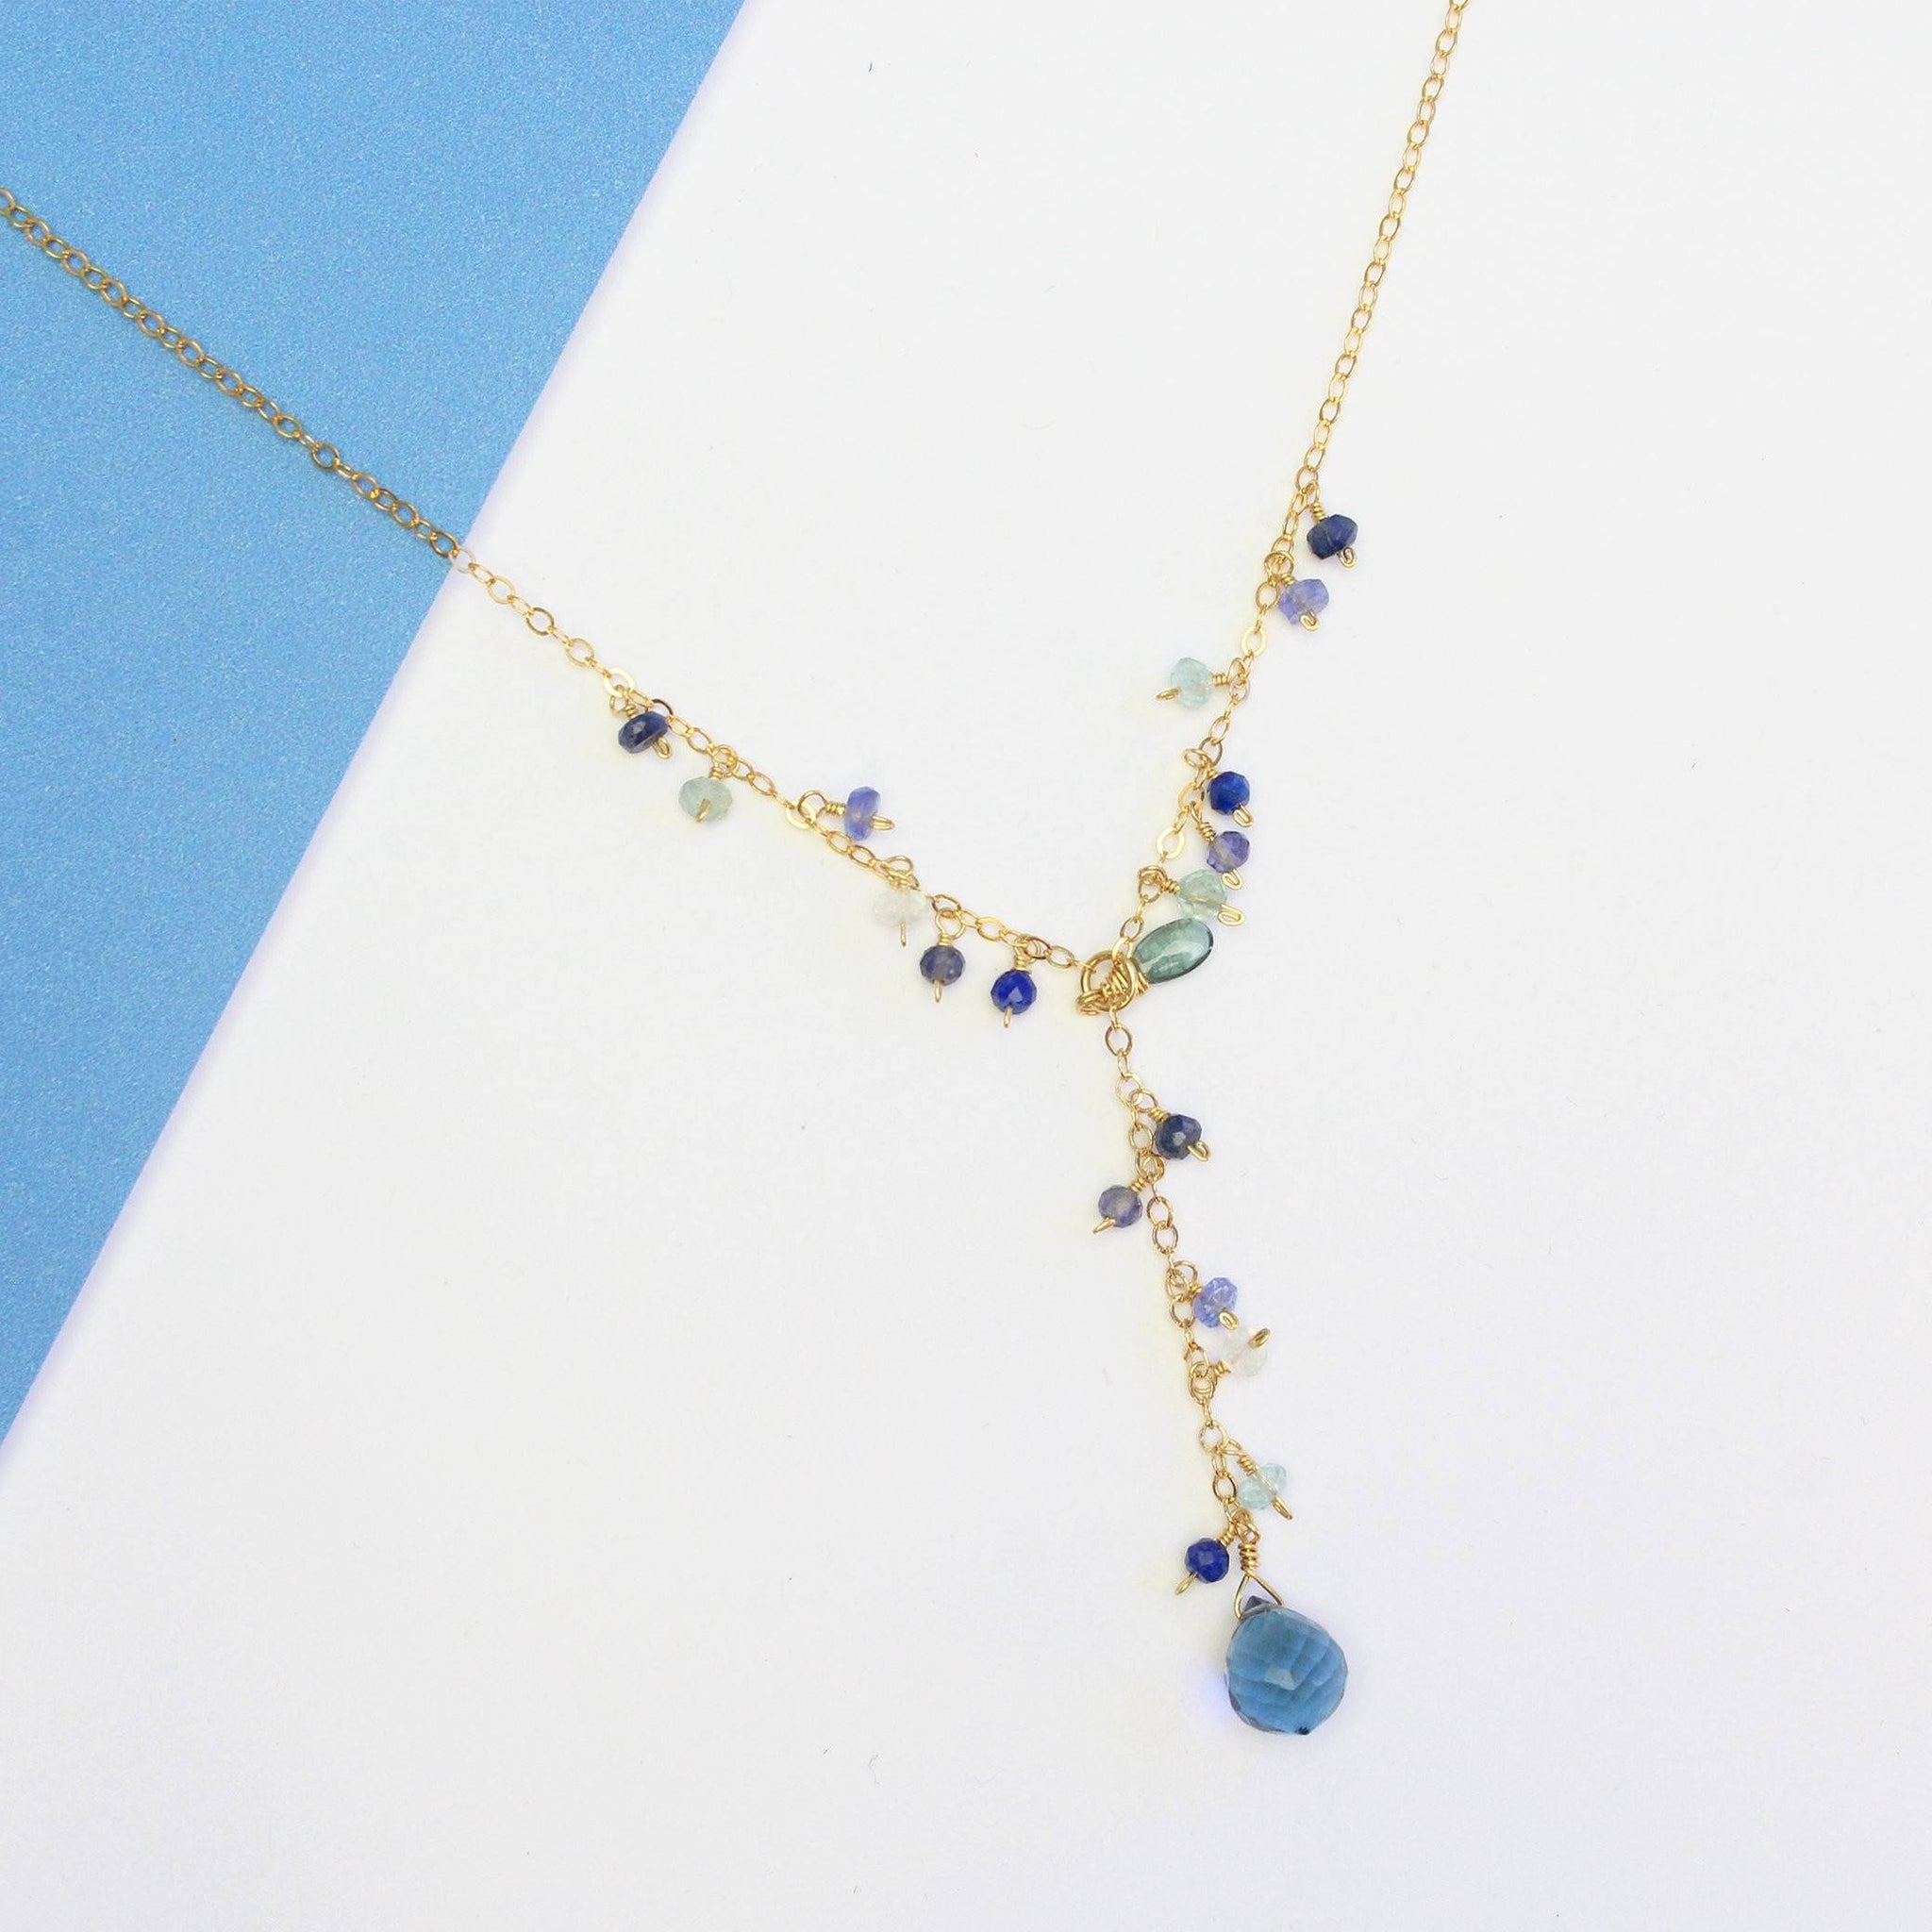 Luxe Treasure Necklace: Blue Ocean